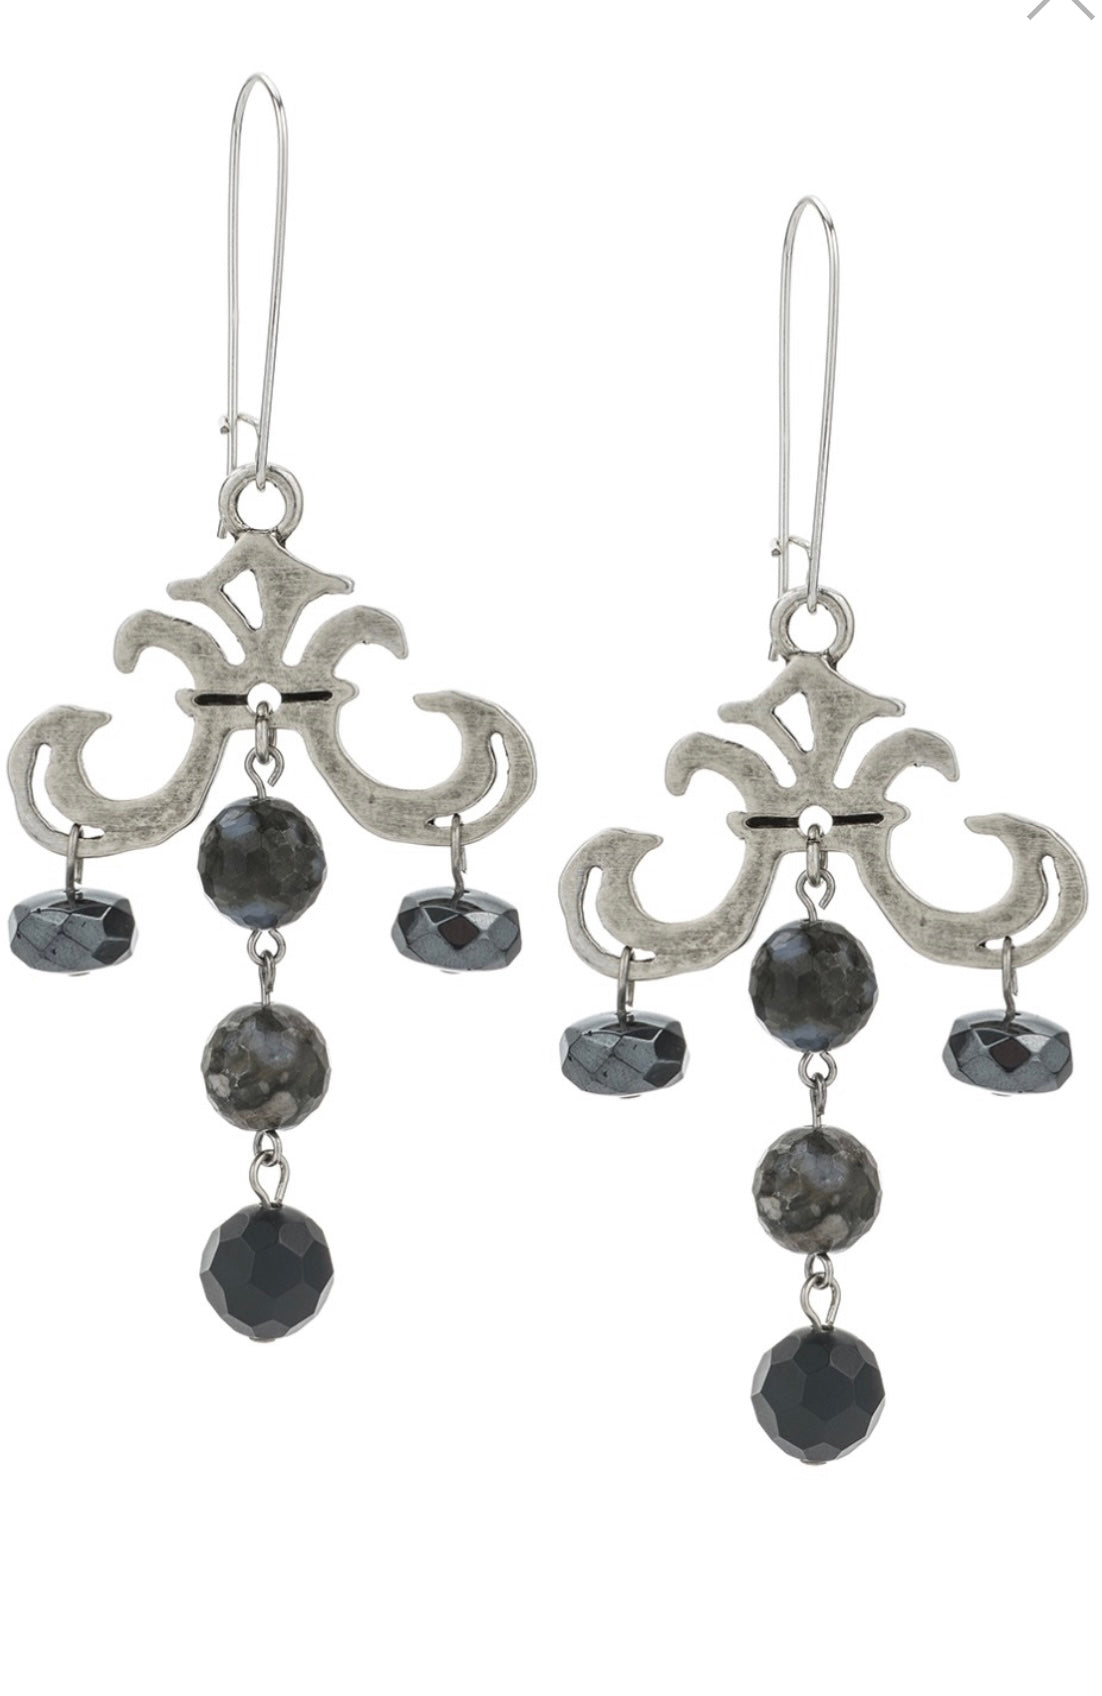 French Kande GRAND FLEUR DROP EARRINGS WITH NUIT MIX DANGLES